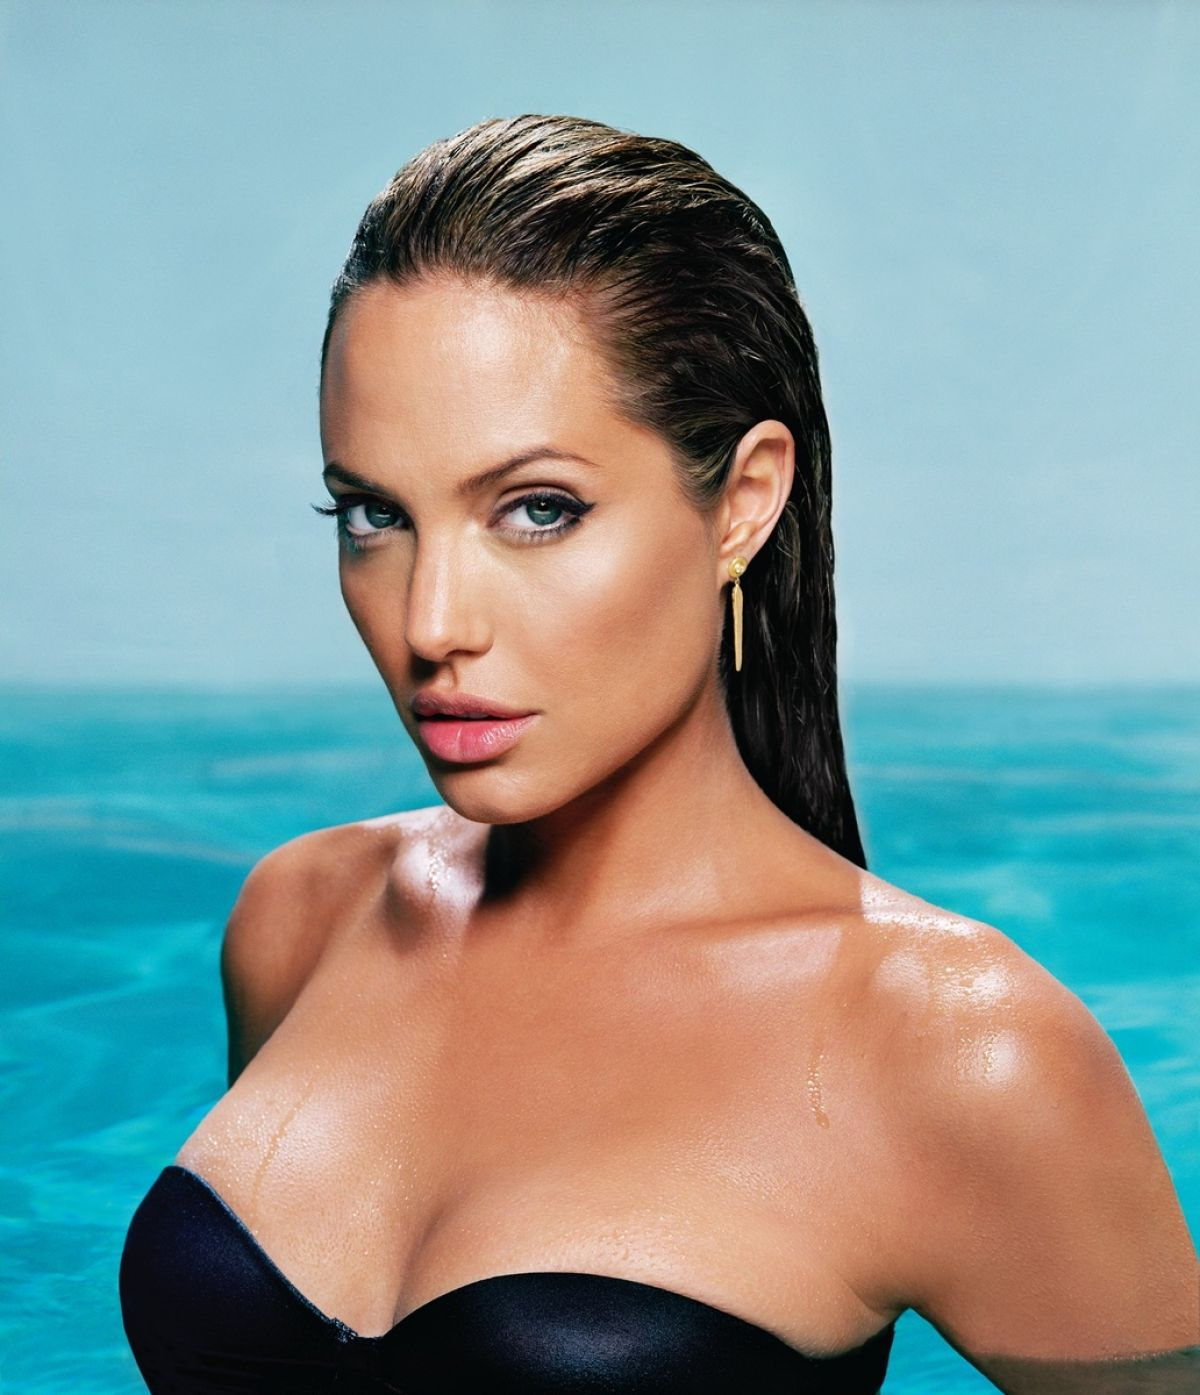 Best from the Past - ANGELINA JOLIE for Esquire Magazine, 2004